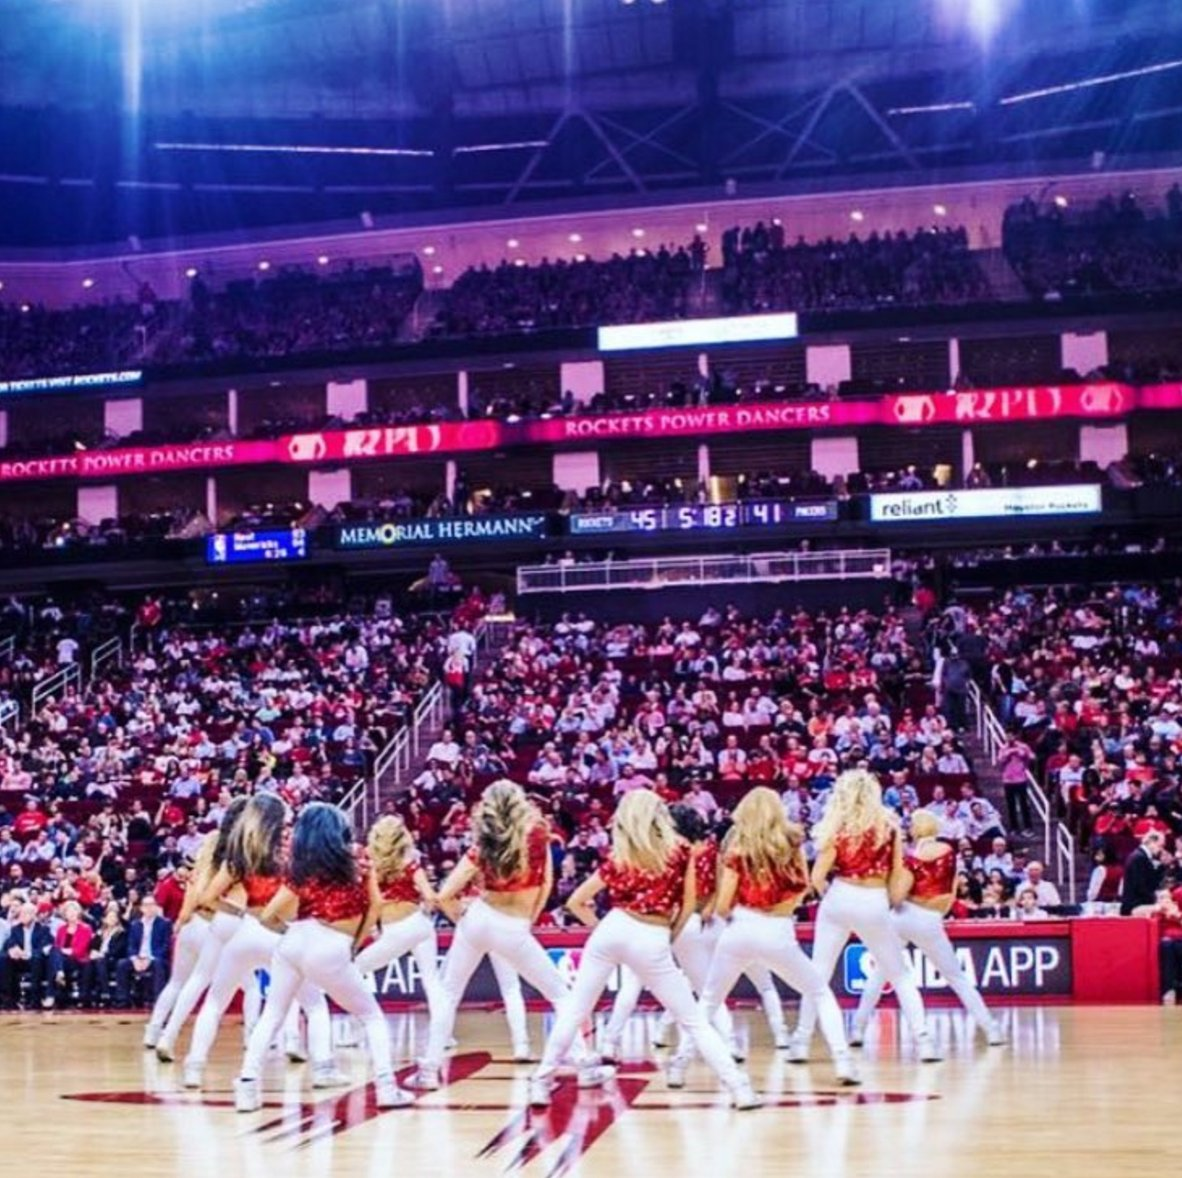 Think you have what it takes to be a Rockets Power Dancer? Auditions for @OfficialRPD are tomorrow! More Info: nba.com/rockets/rpd/au…